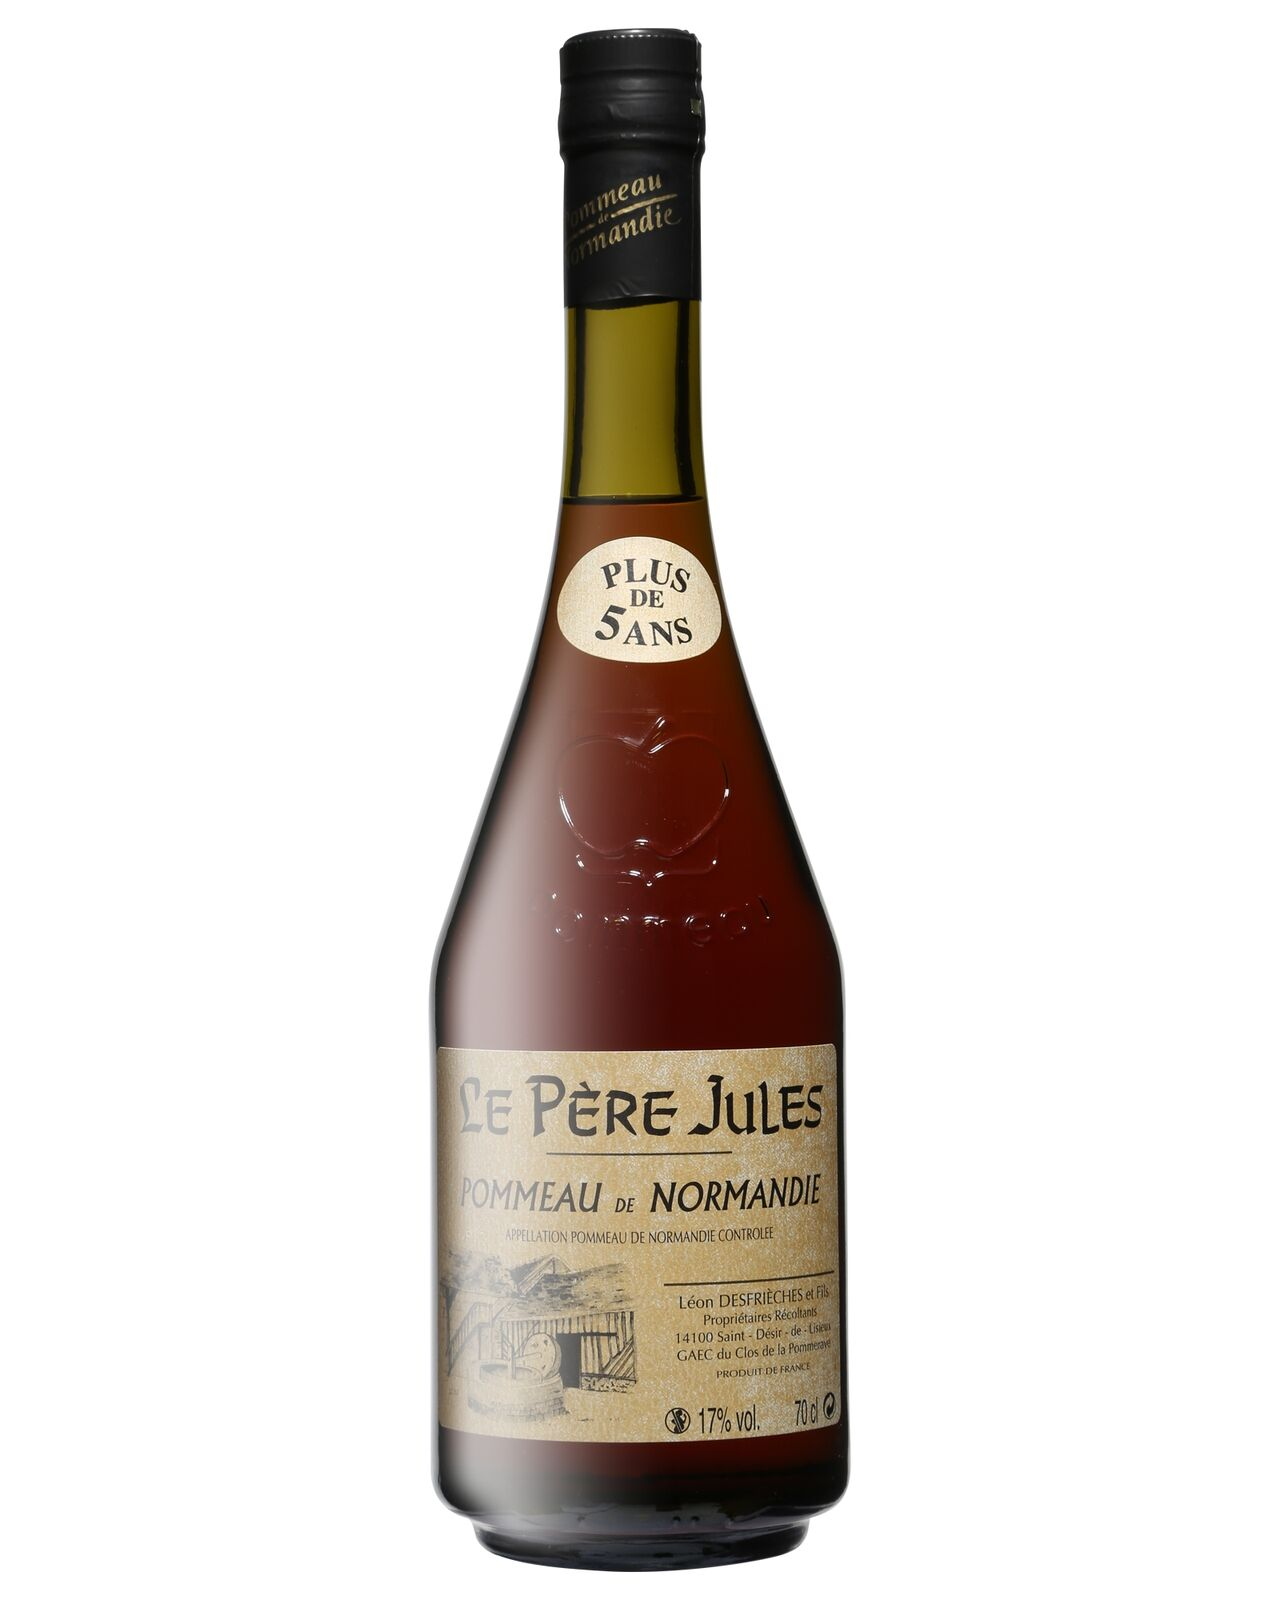 Le Pere Jules Pommeau de Normandie Aperitif 5 Years Old 700mL case of 12 Liqueur